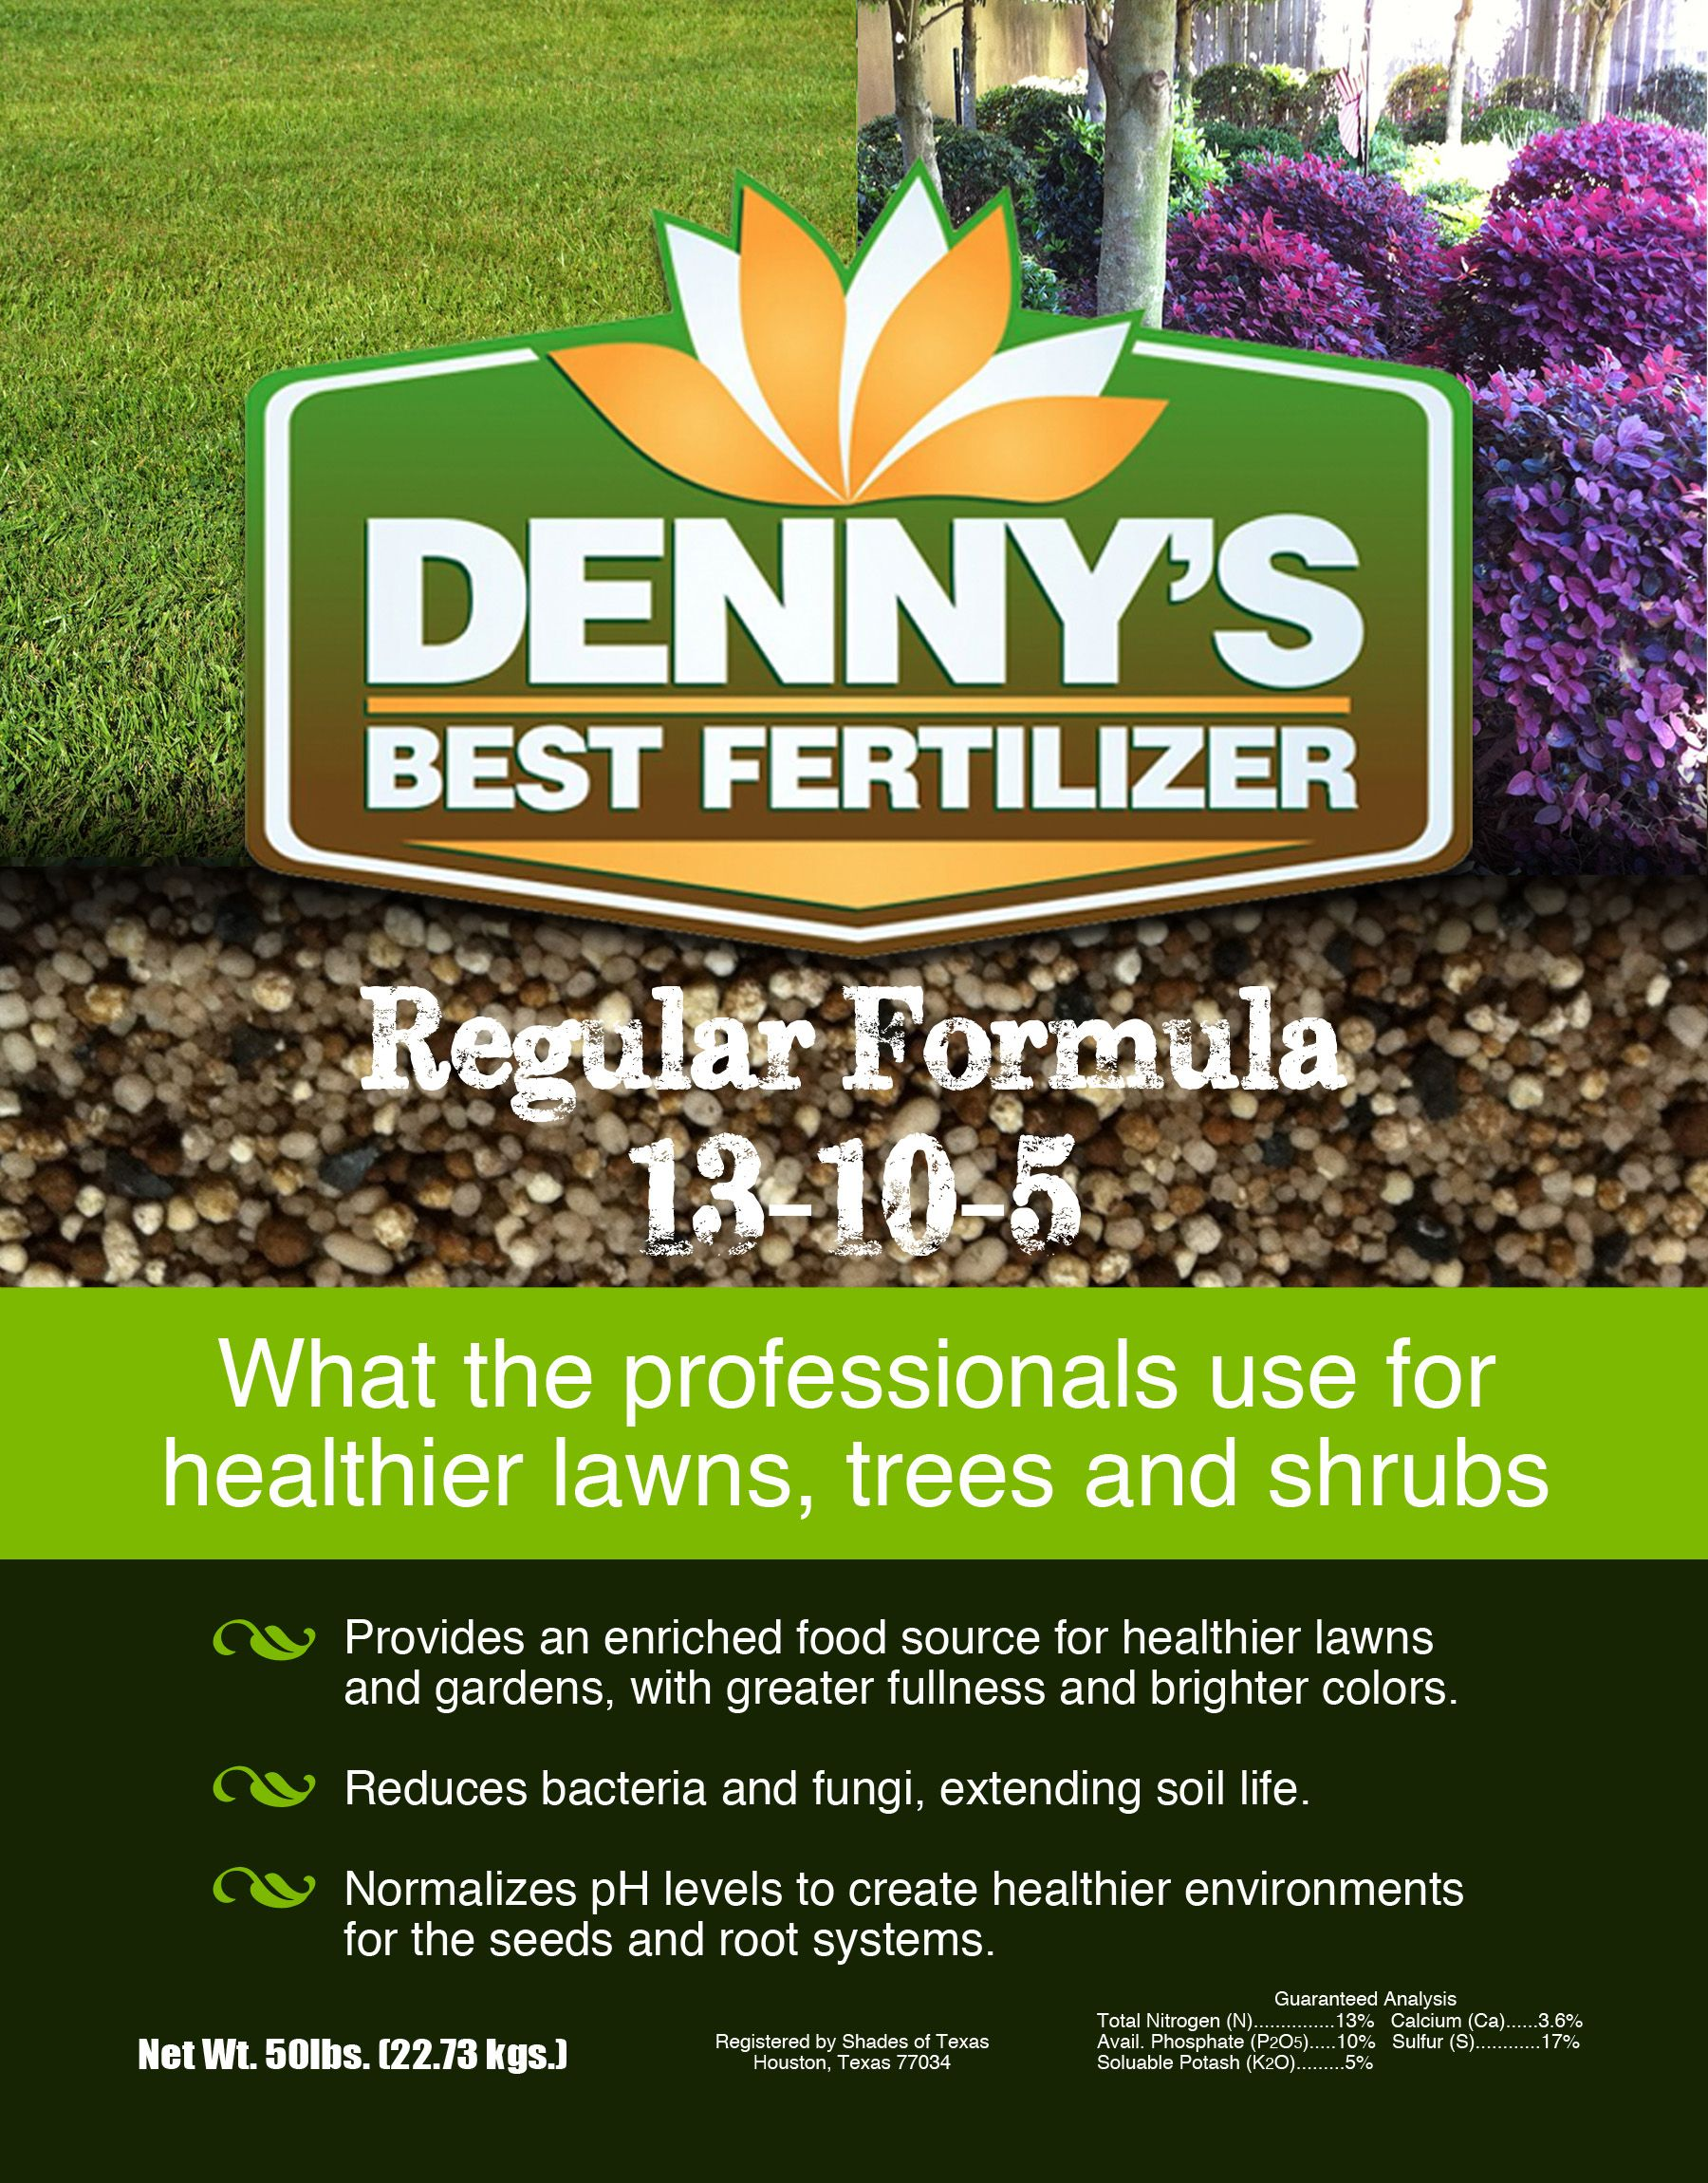 Denny S Best Fertilizer Regular Formula Is A Professional Blend Of Nutrients For Your Trees Shrubs And Lawns Exclus Lawn And Garden Healthy Lawn Fertilizer